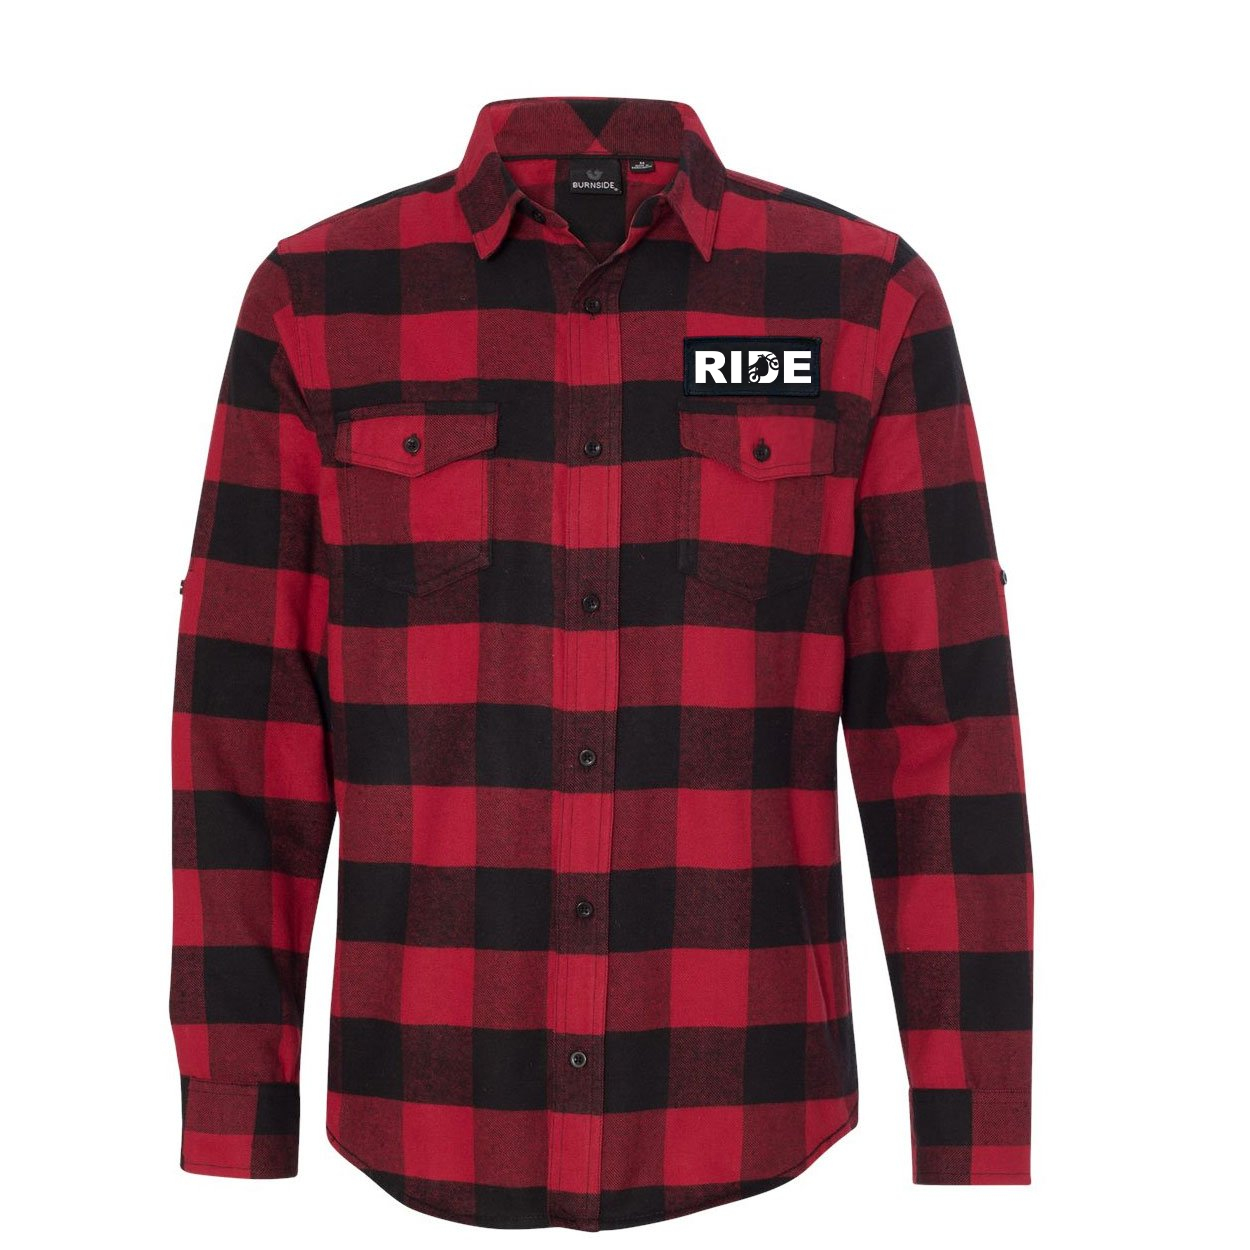 Ride Moto Logo Classic Unisex Long Sleeve Woven Patch Flannel Shirt Red/Black Buffalo (White Logo)